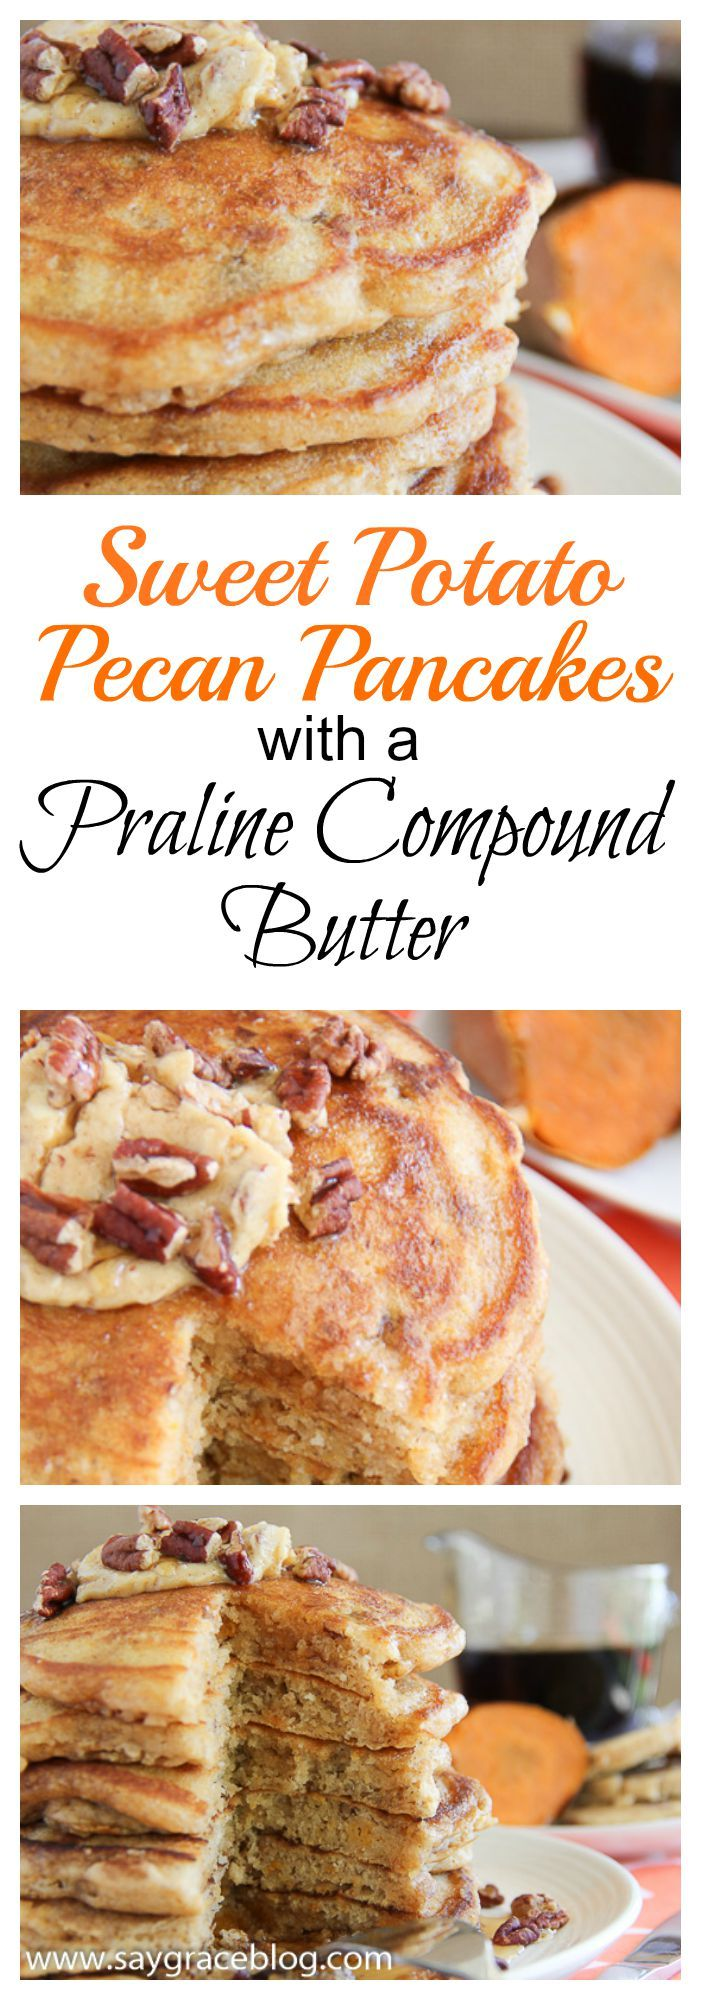 Light and fluffy sweet potato pancakes packed with toasted pecans and smeared with a delicious pecan praline compound butter!